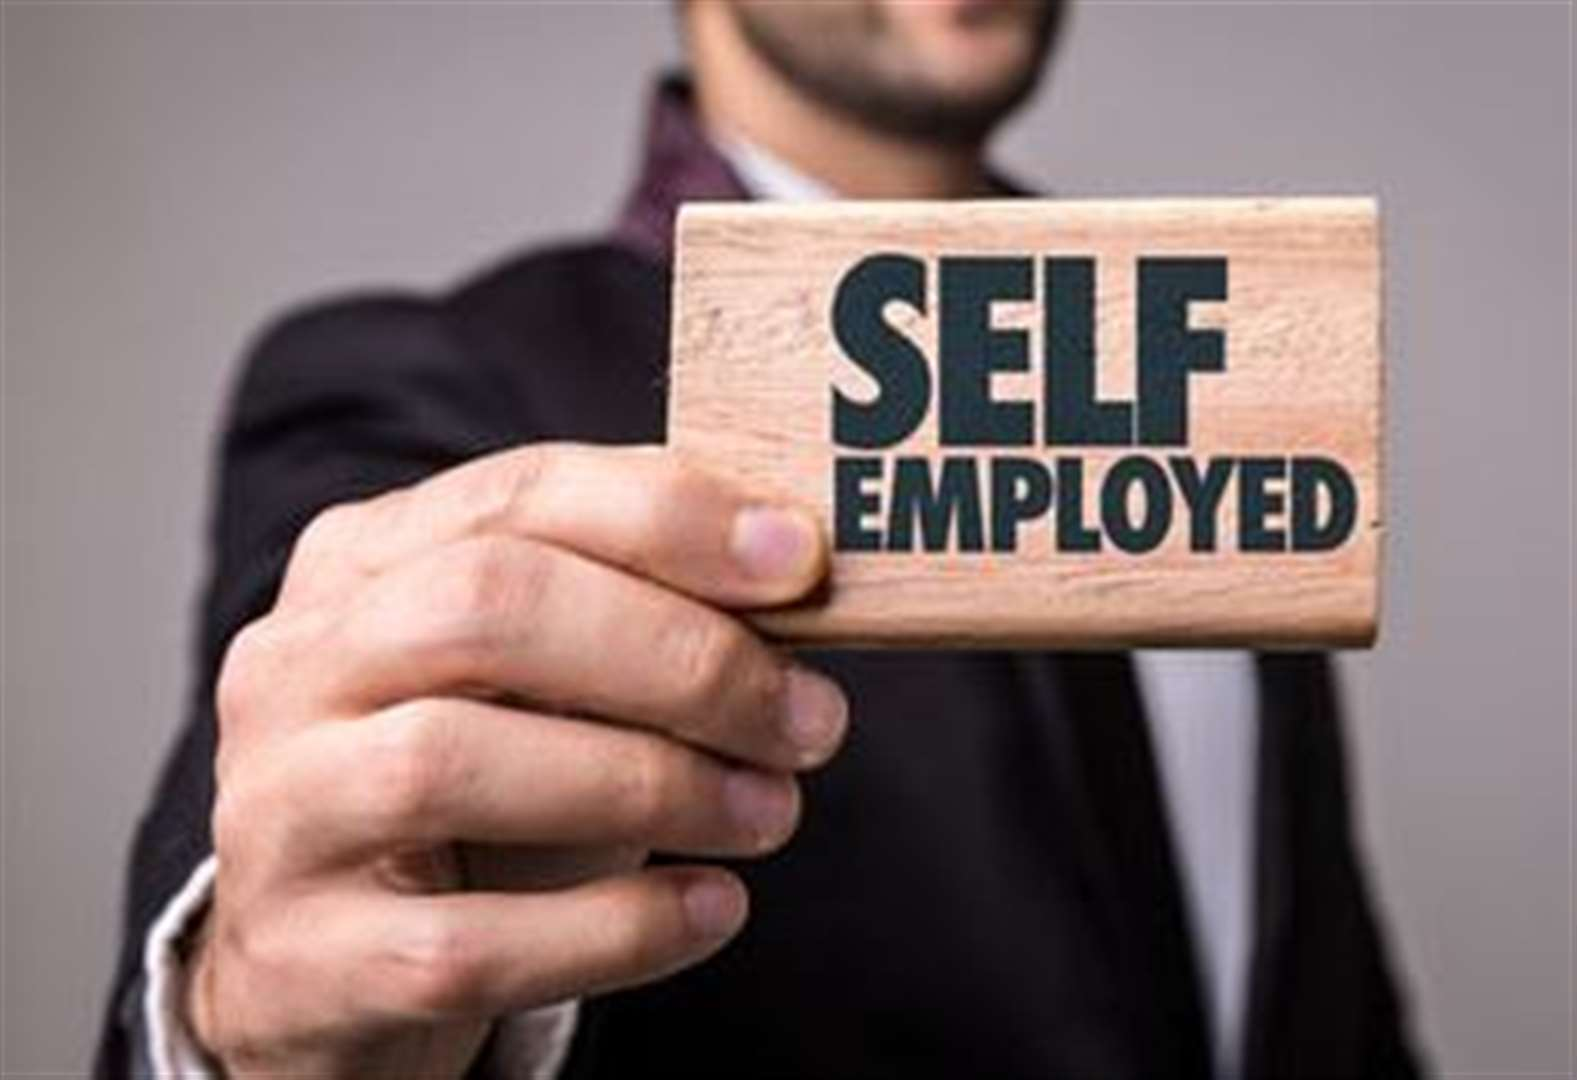 Concern over June date for self-employment payments